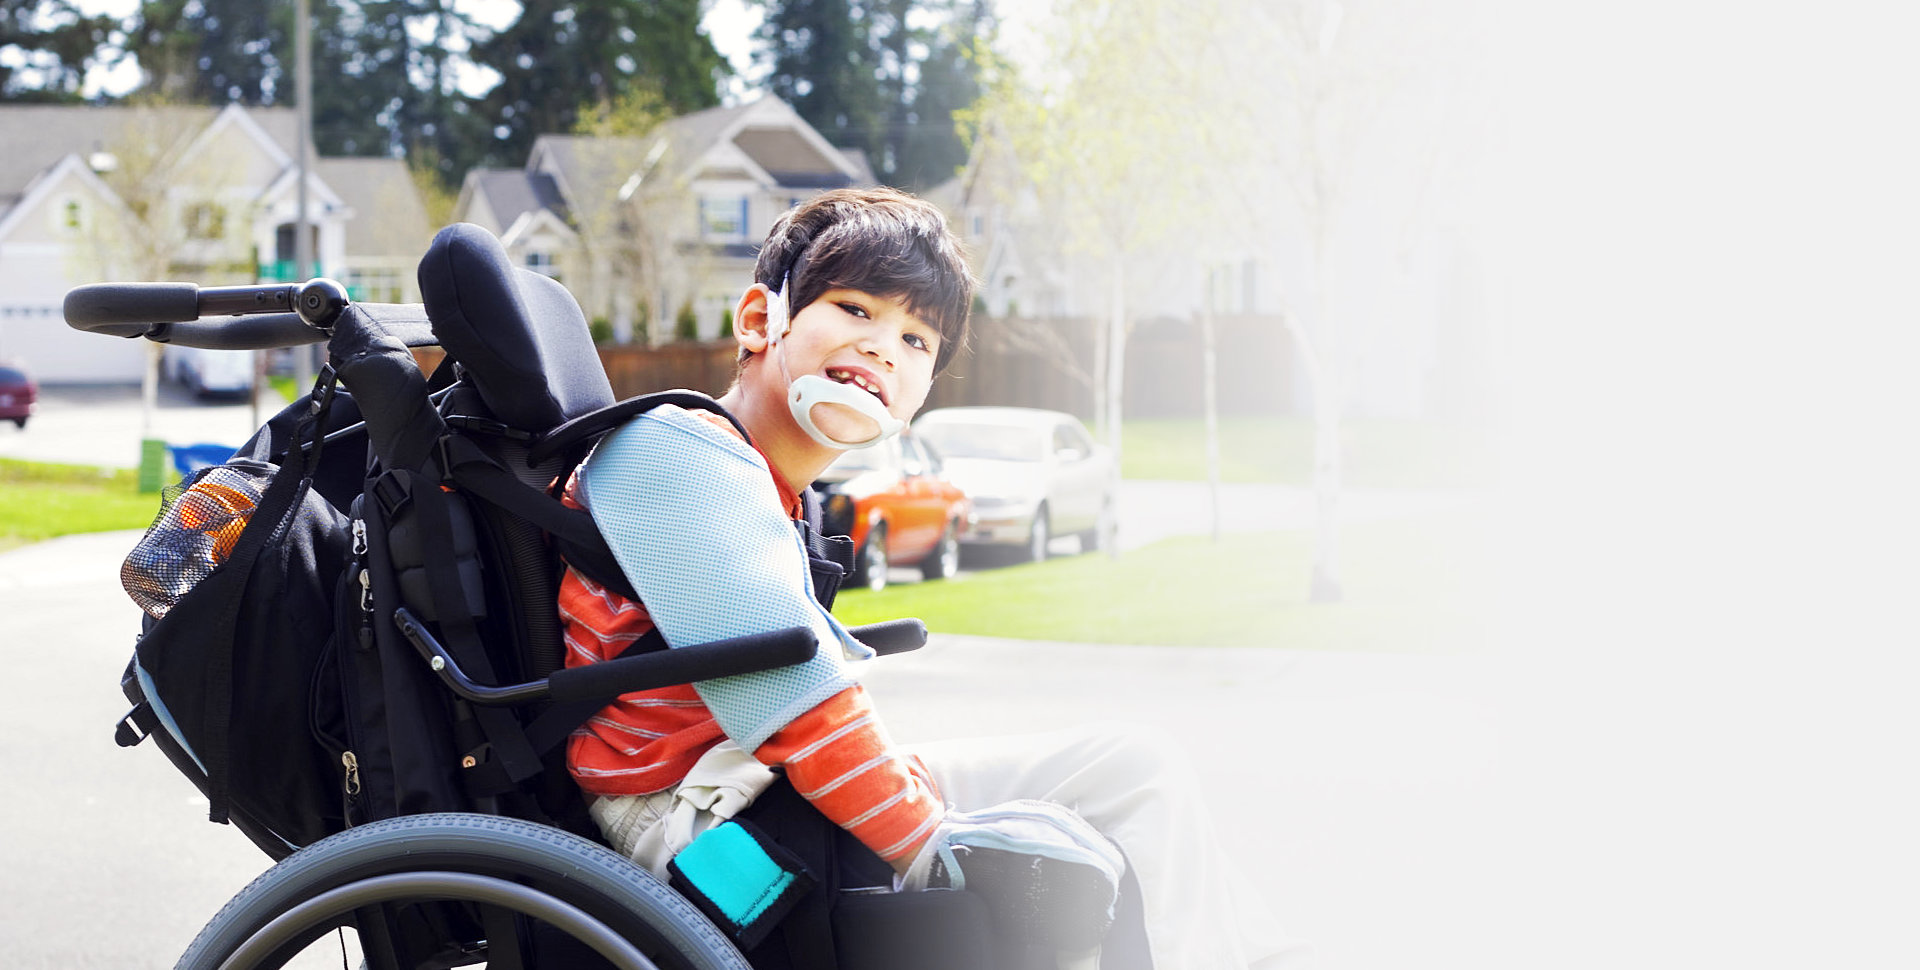 smiling kid on wheelchair